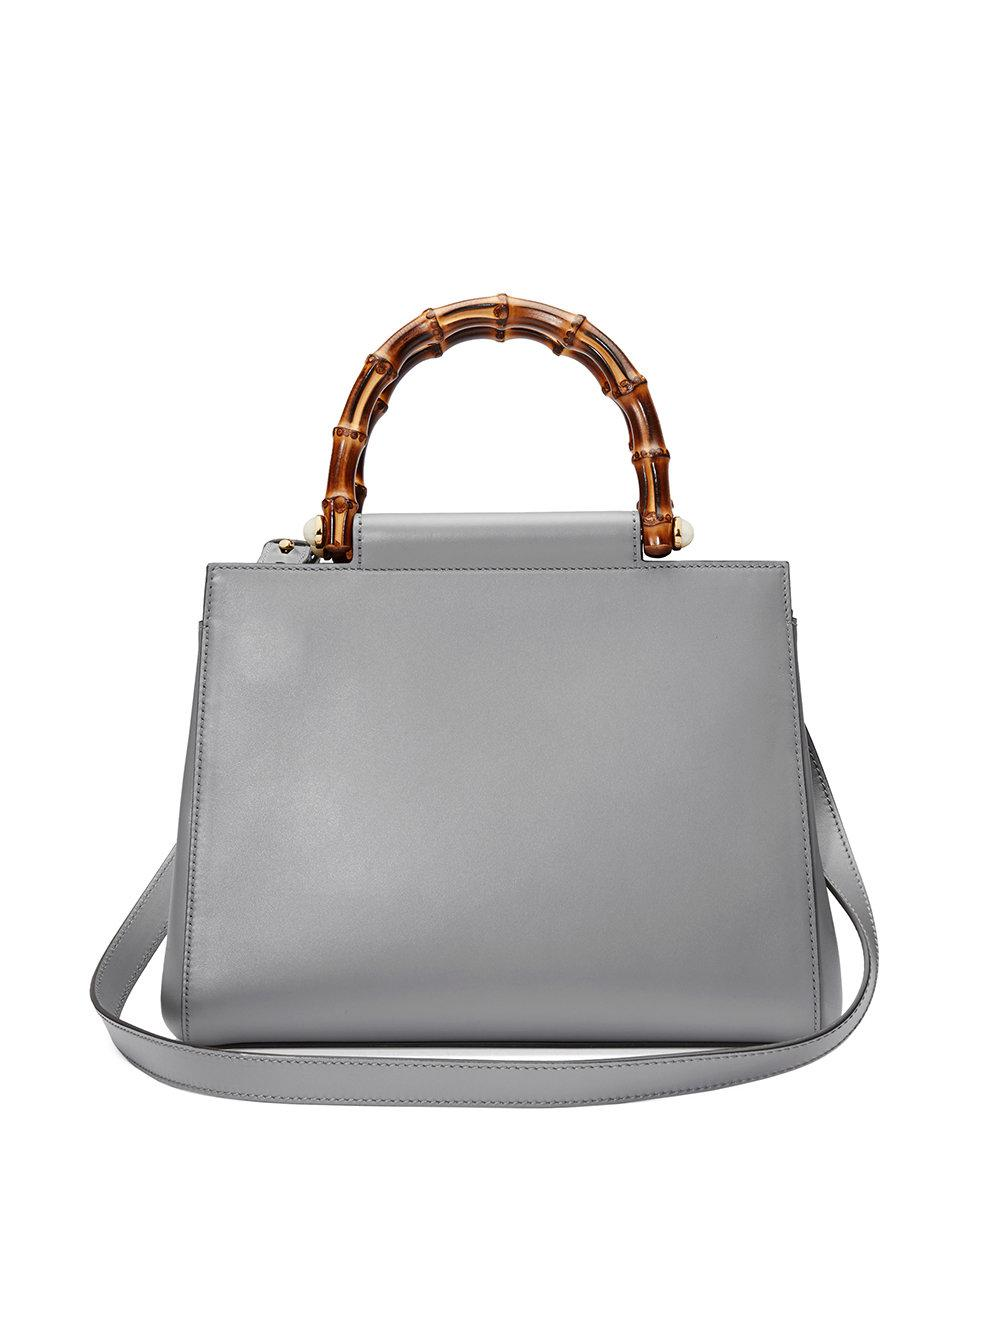 95a59aaaa0f Gucci Nymphaea Leather Top Handle Bag in Gray - Lyst